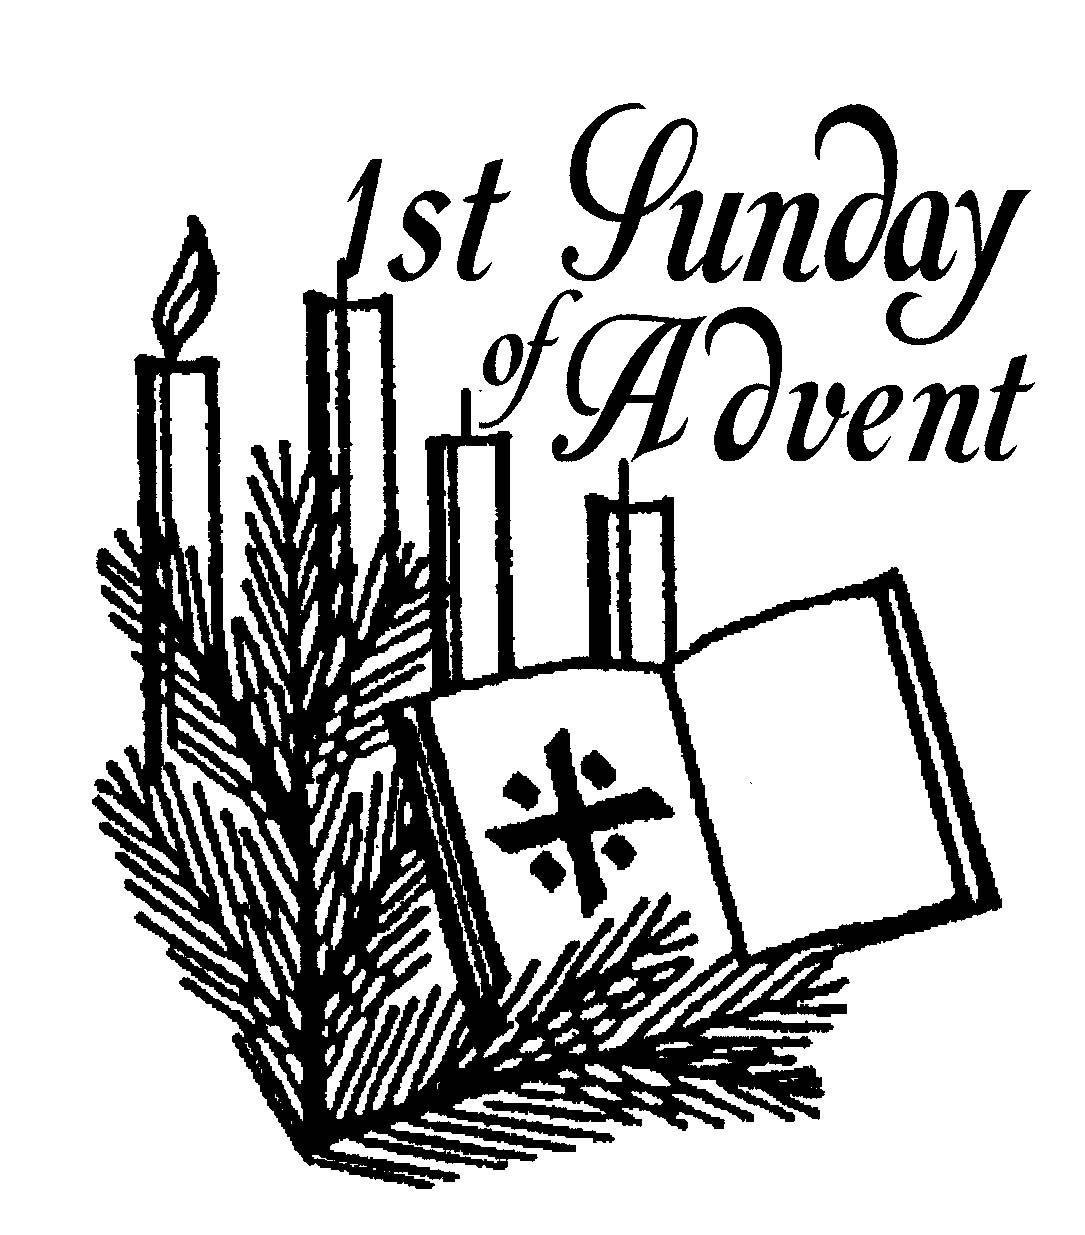 Free clipart for second sunday of advent image free download Religious Advent Clipart | Free download best Religious Advent ... image free download